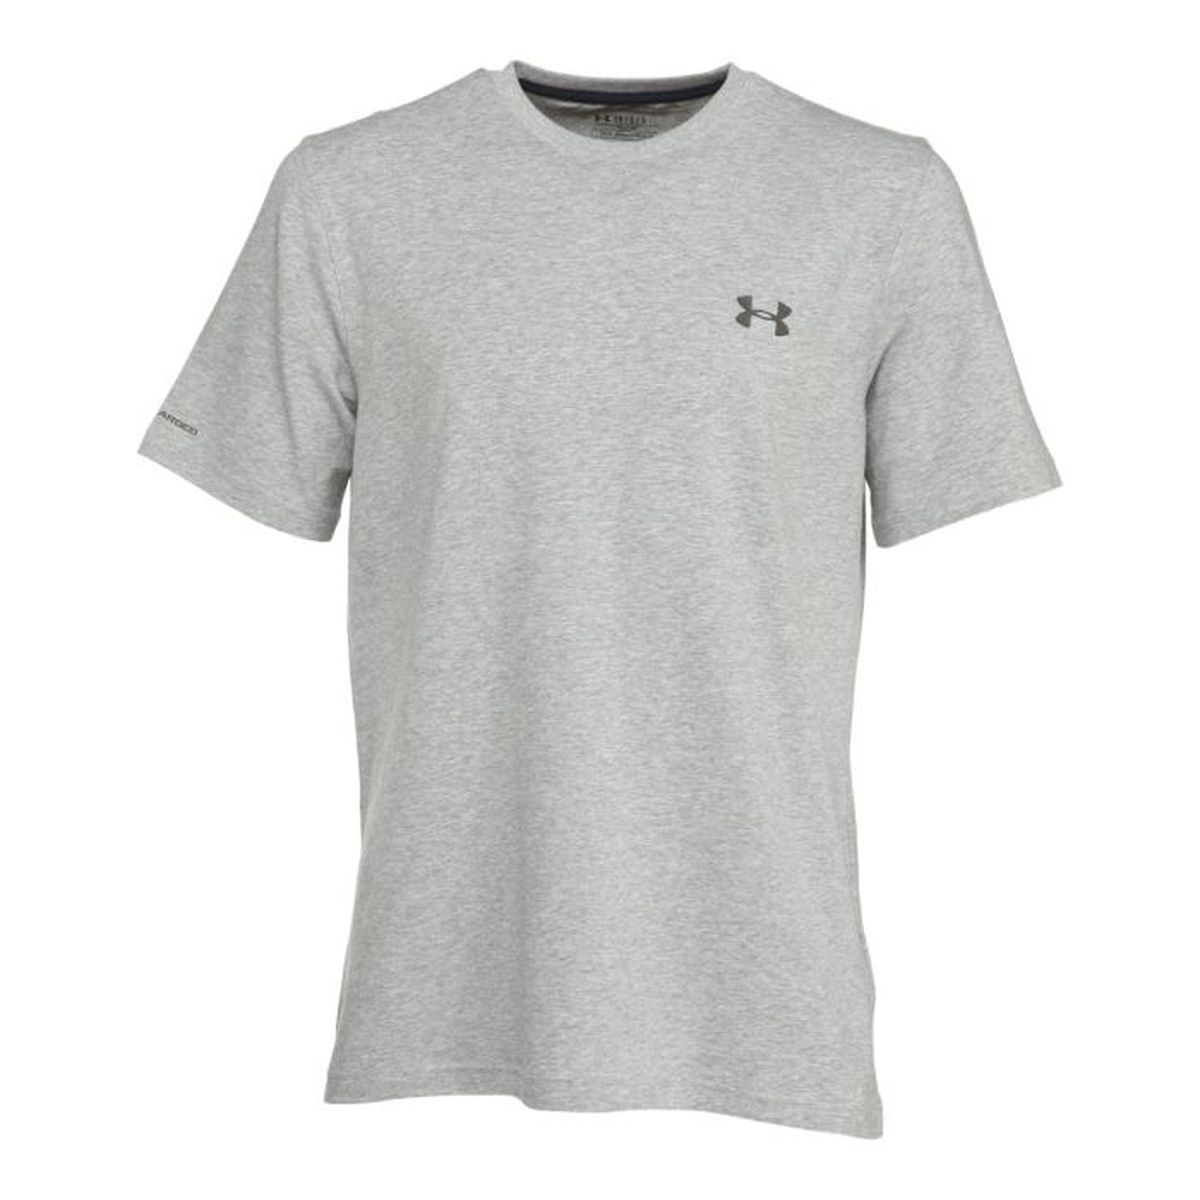 UNDER ARMOUR Tee Shirt Heat Gear Charged Homme - Prix pas cher ... 46586c9acf2